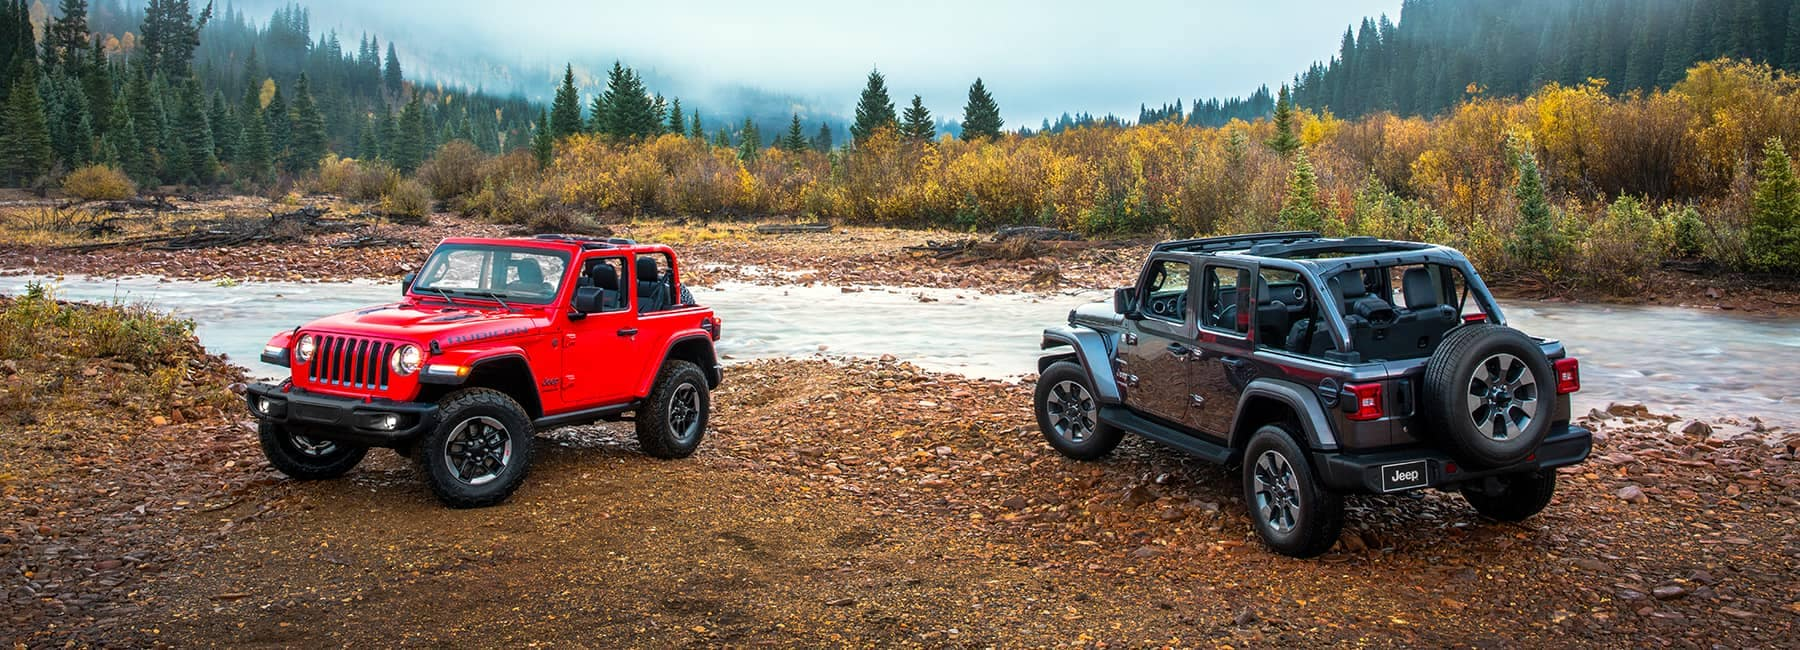 hight resolution of if you are looking to buy a jeep wrangler in atlanta come to ed voyles jeep where our friendly staff will take care of all your automotive needs